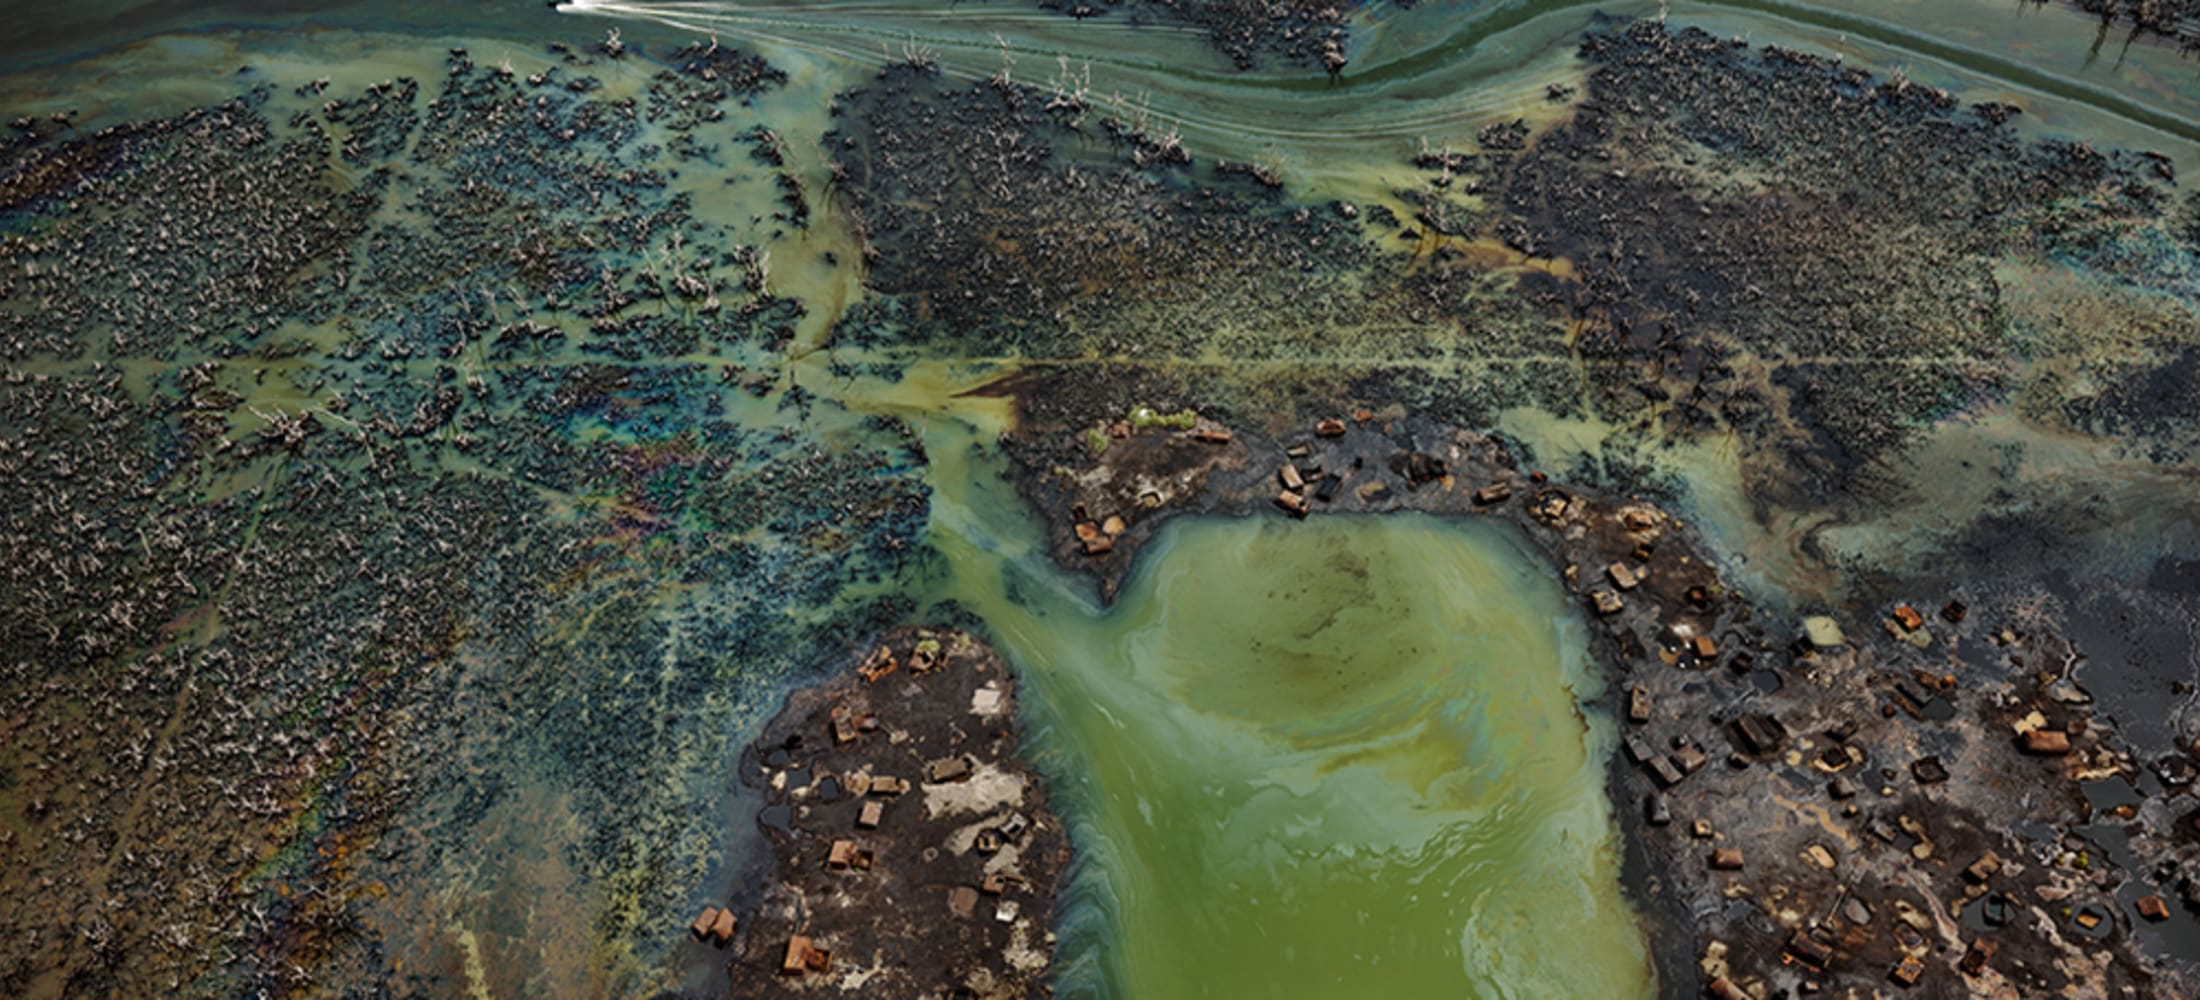 Edward Burtynsky featured in Anthropocene